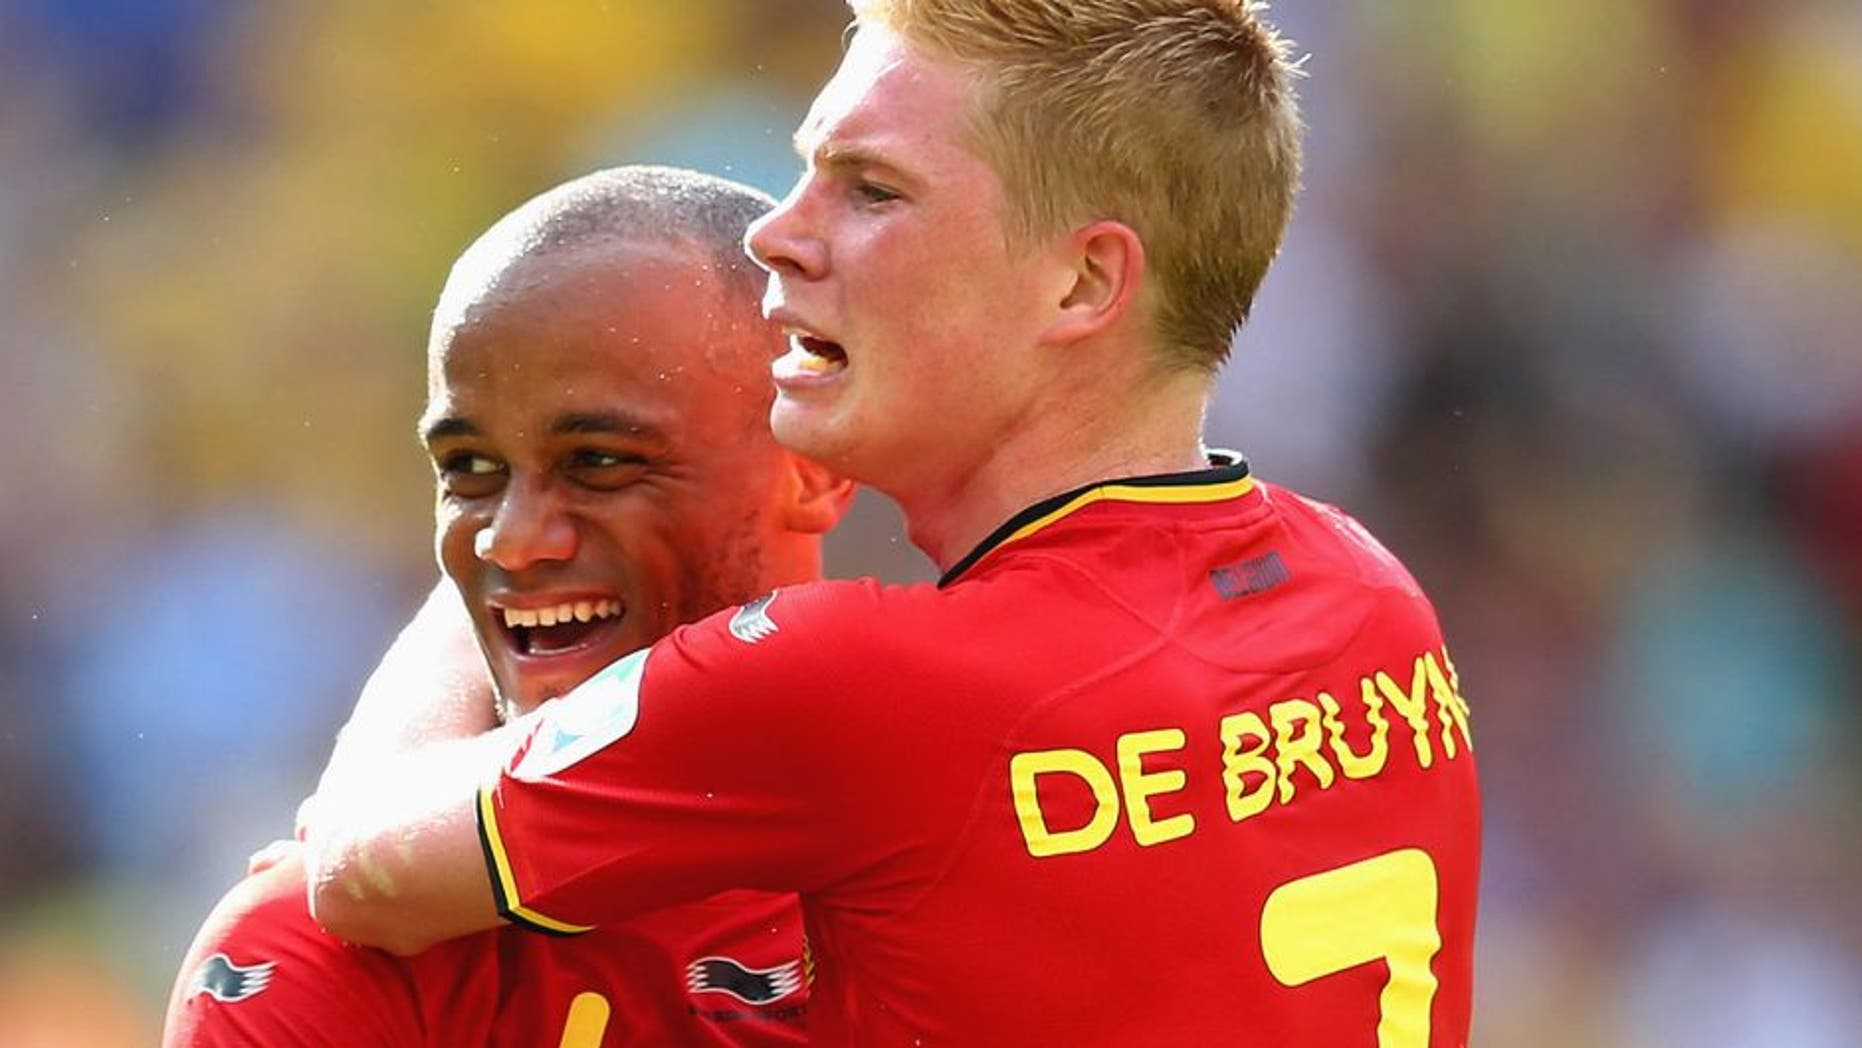 RIO DE JANEIRO, BRAZIL - JUNE 22: Vincent Kompany and Kevin De Bruyne of Belgium celebrate during the 2014 FIFA World Cup Brazil Group H match between Belgium and Russia at Maracana on June 22, 2014 in Rio de Janeiro, Brazil. (Photo by Julian Finney/Getty Images)